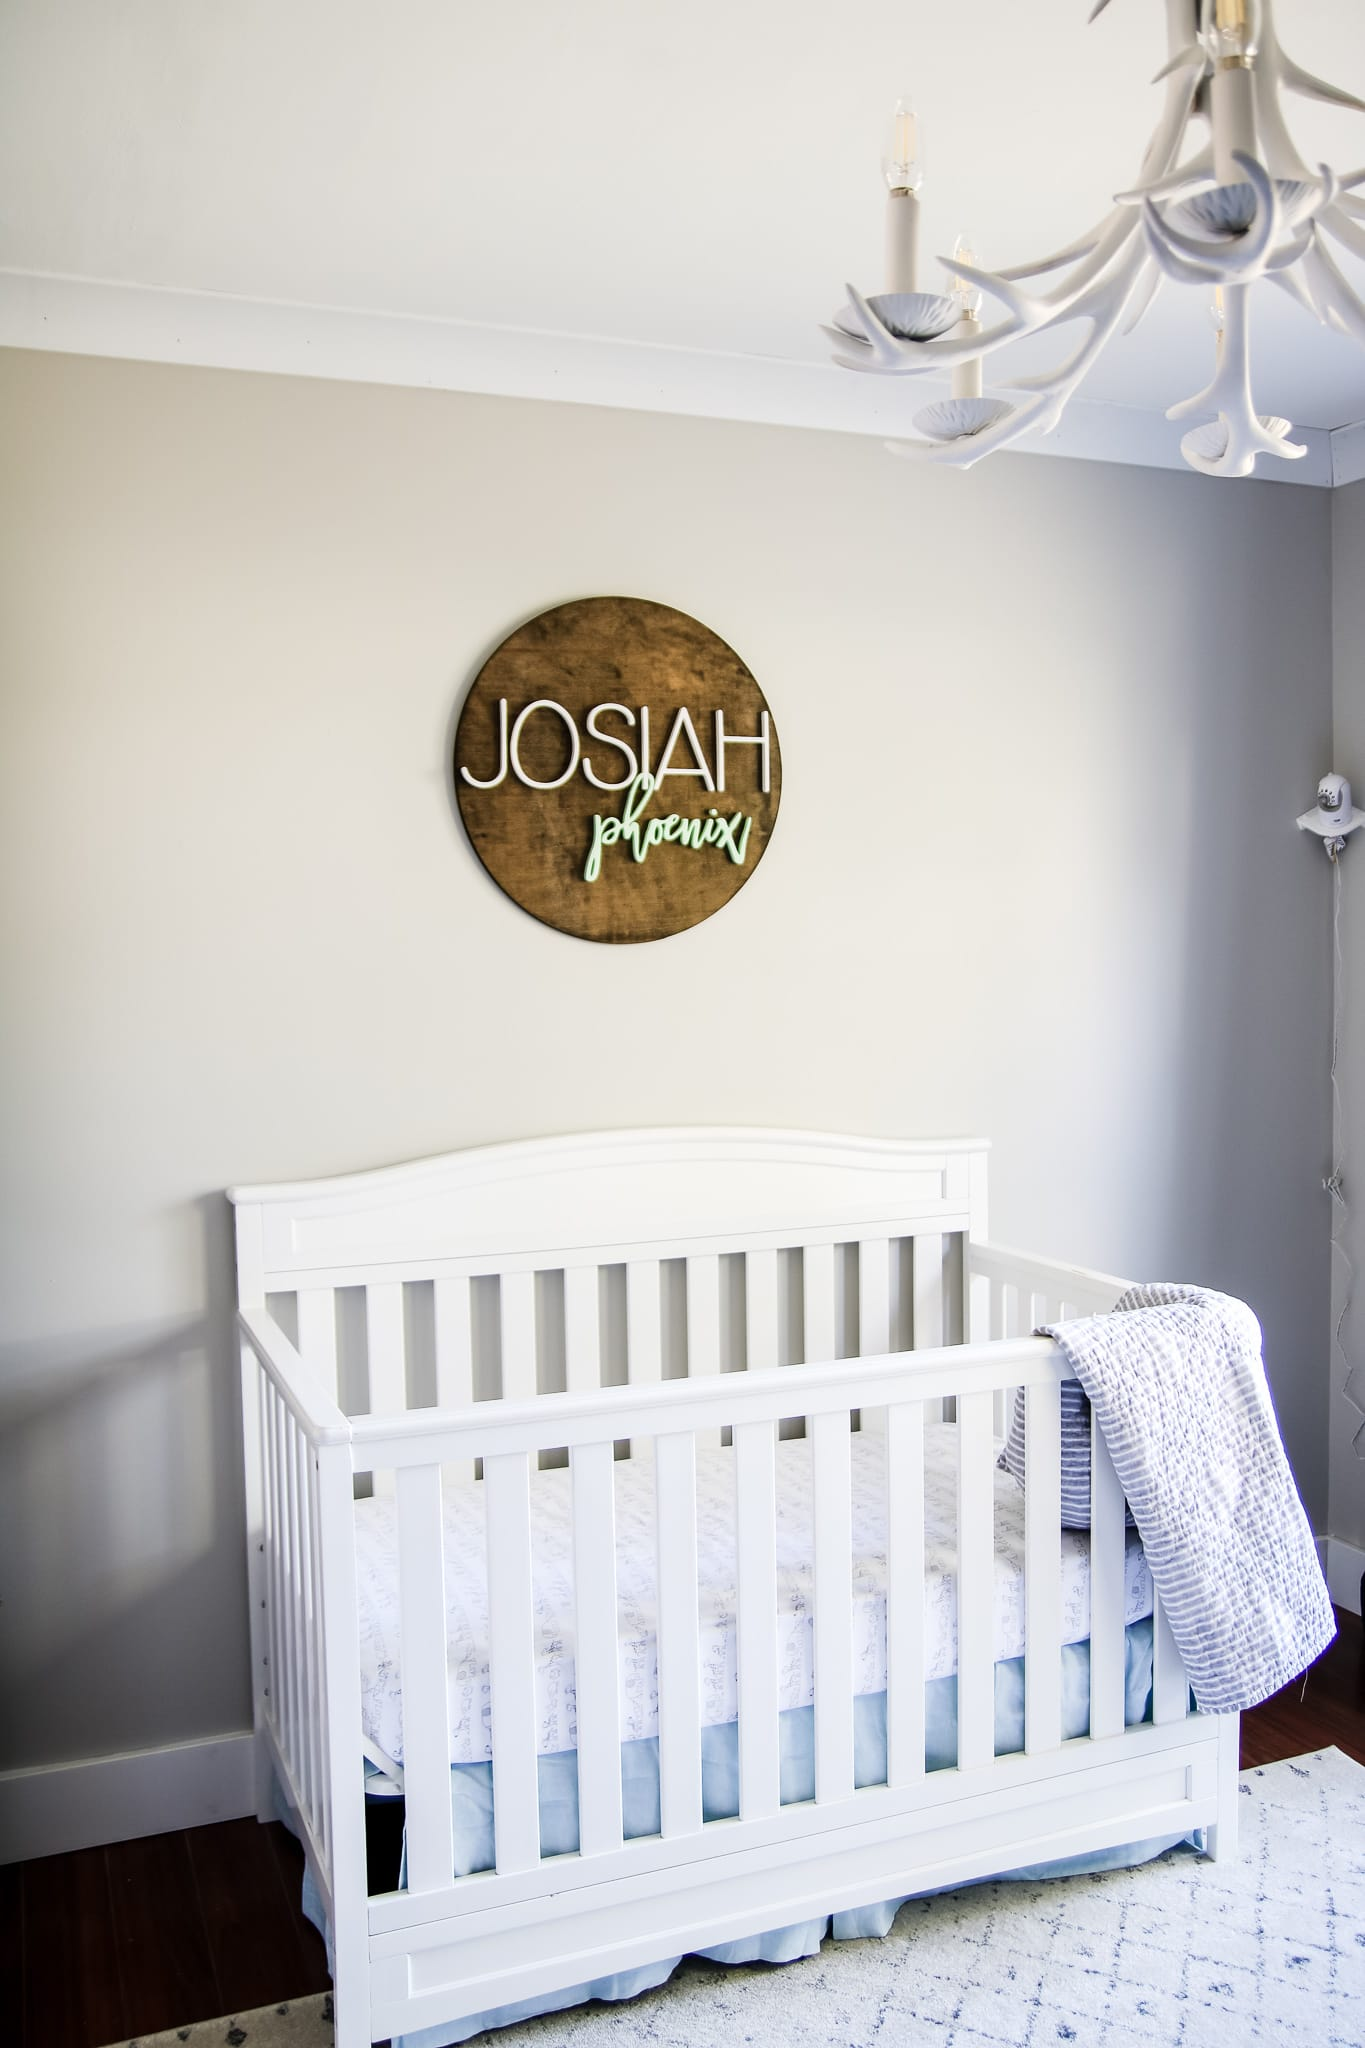 Nursery painted agreeable gray that shows both the warm and cooler side of the color